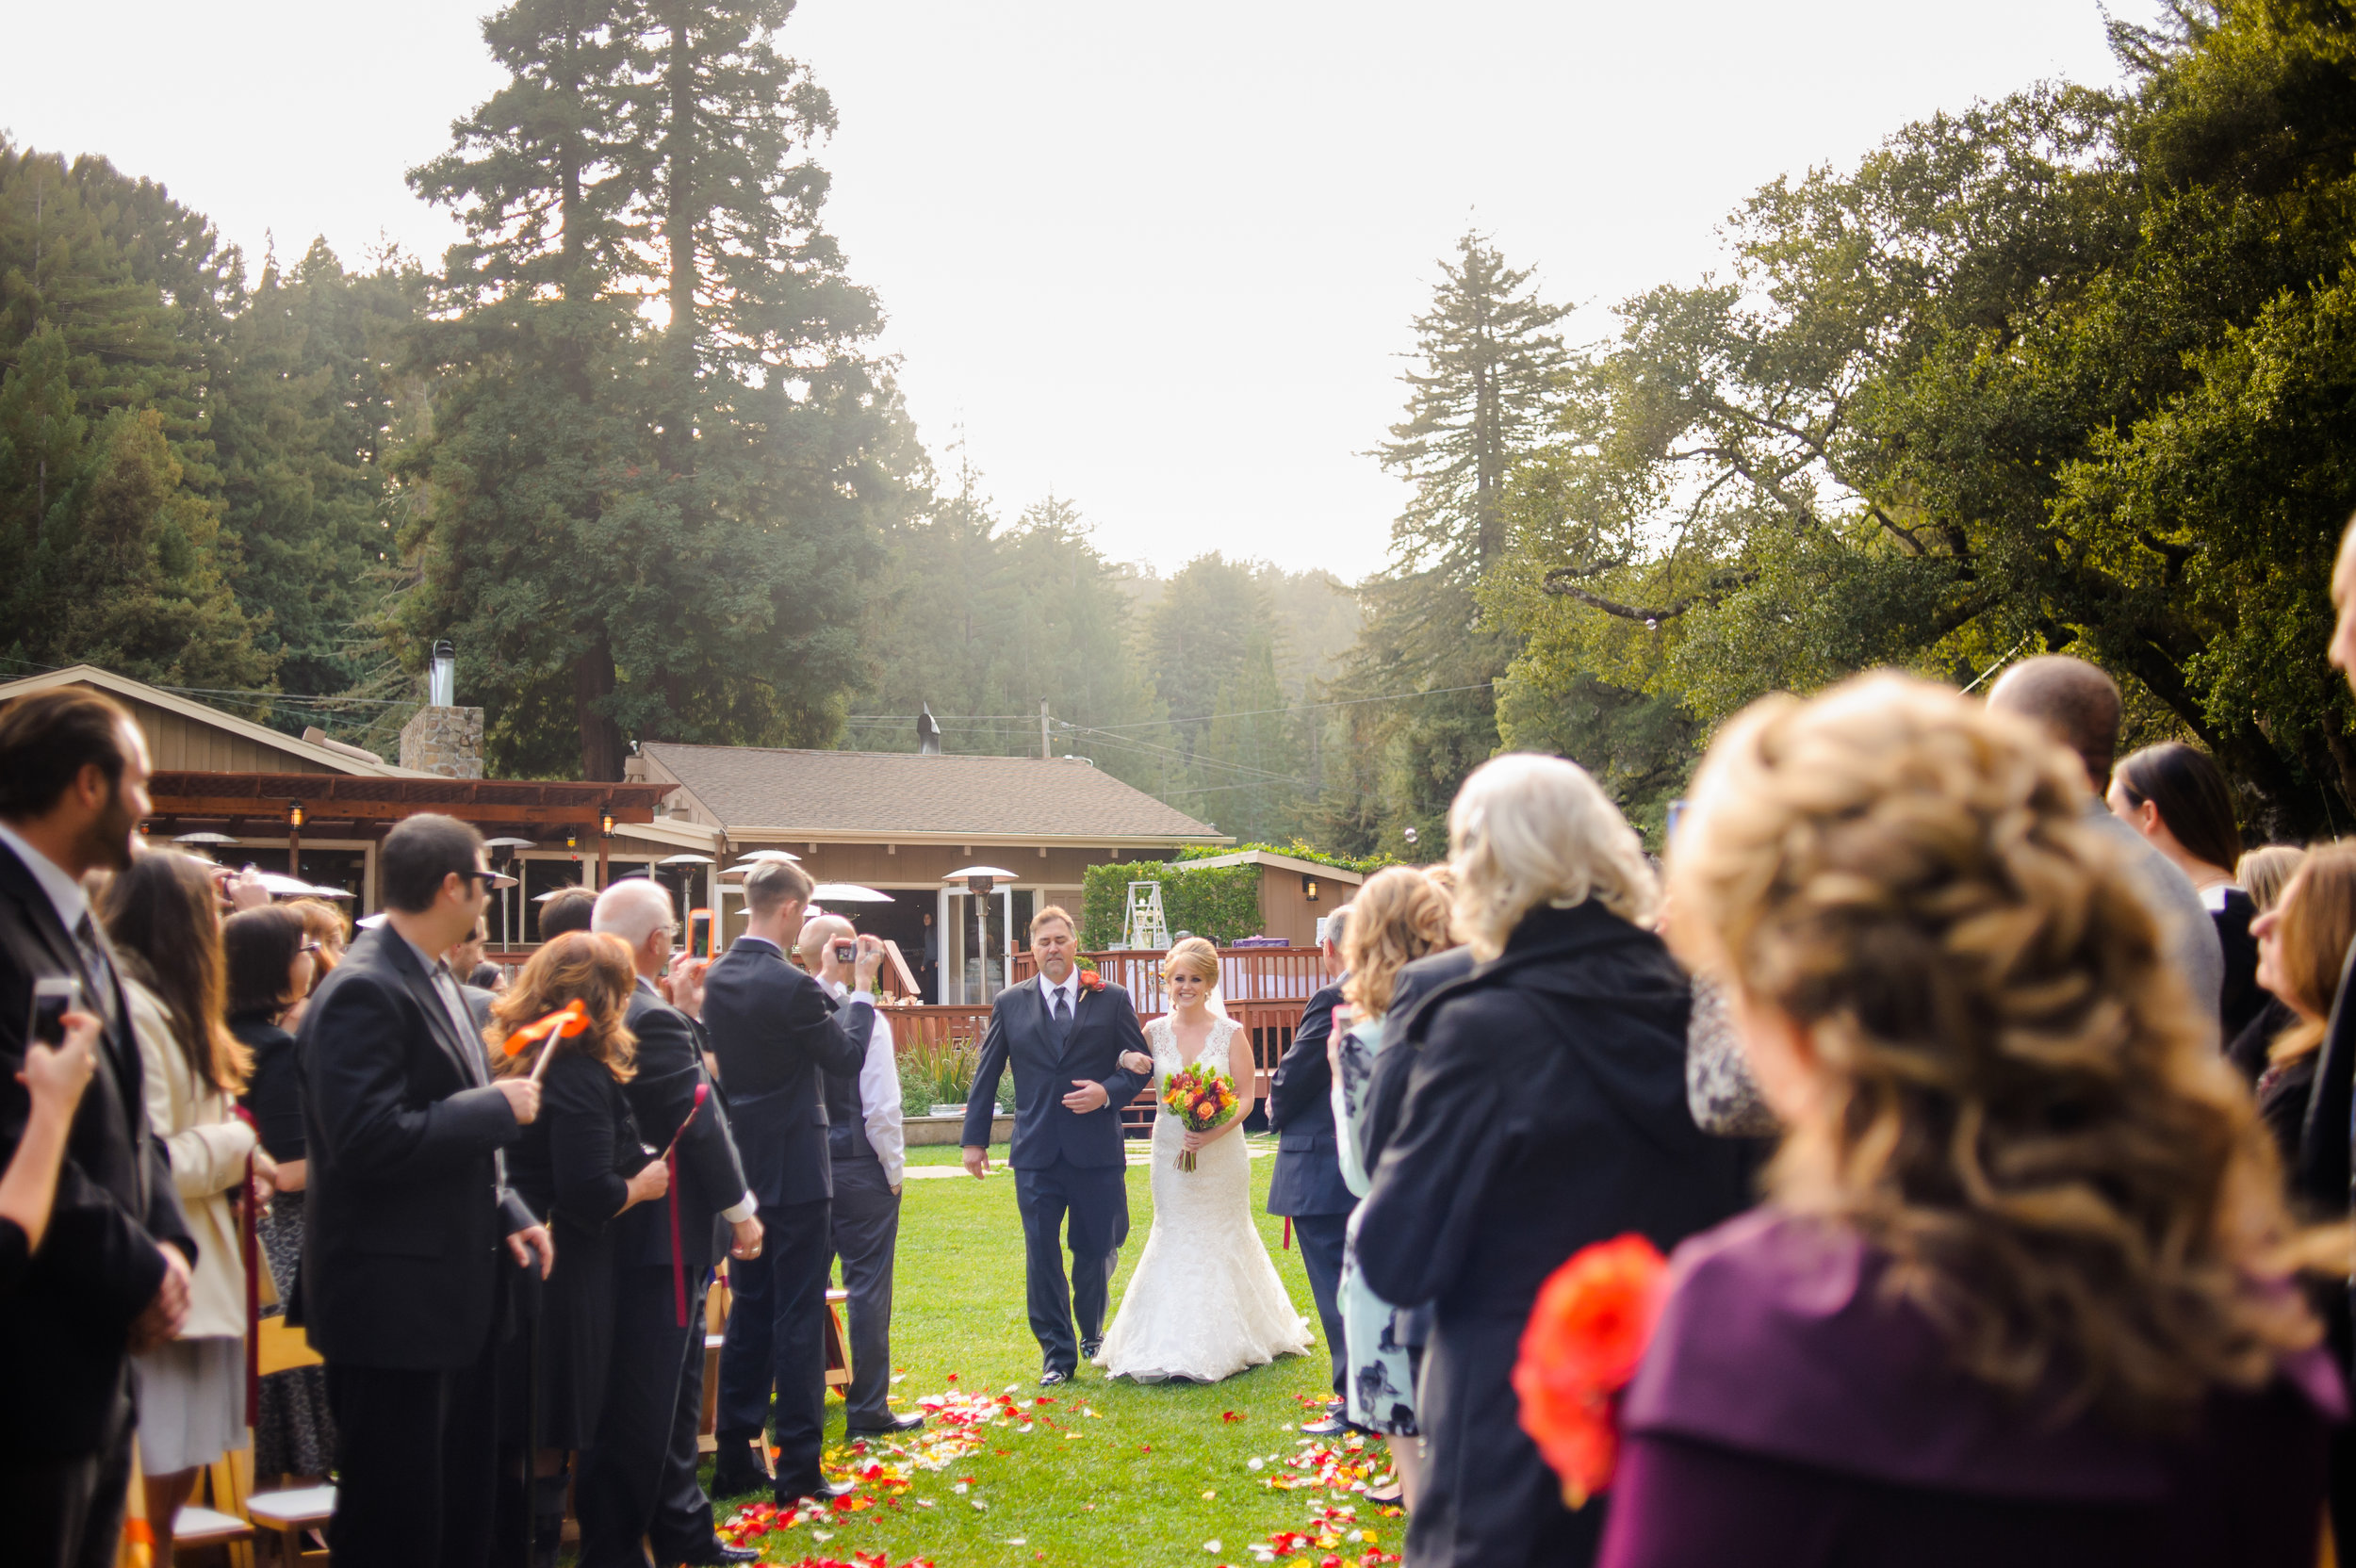 sammi-matt-008-the-mountain-terrace-woodside-wedding-photographer-katherine-nicole-photography.JPG